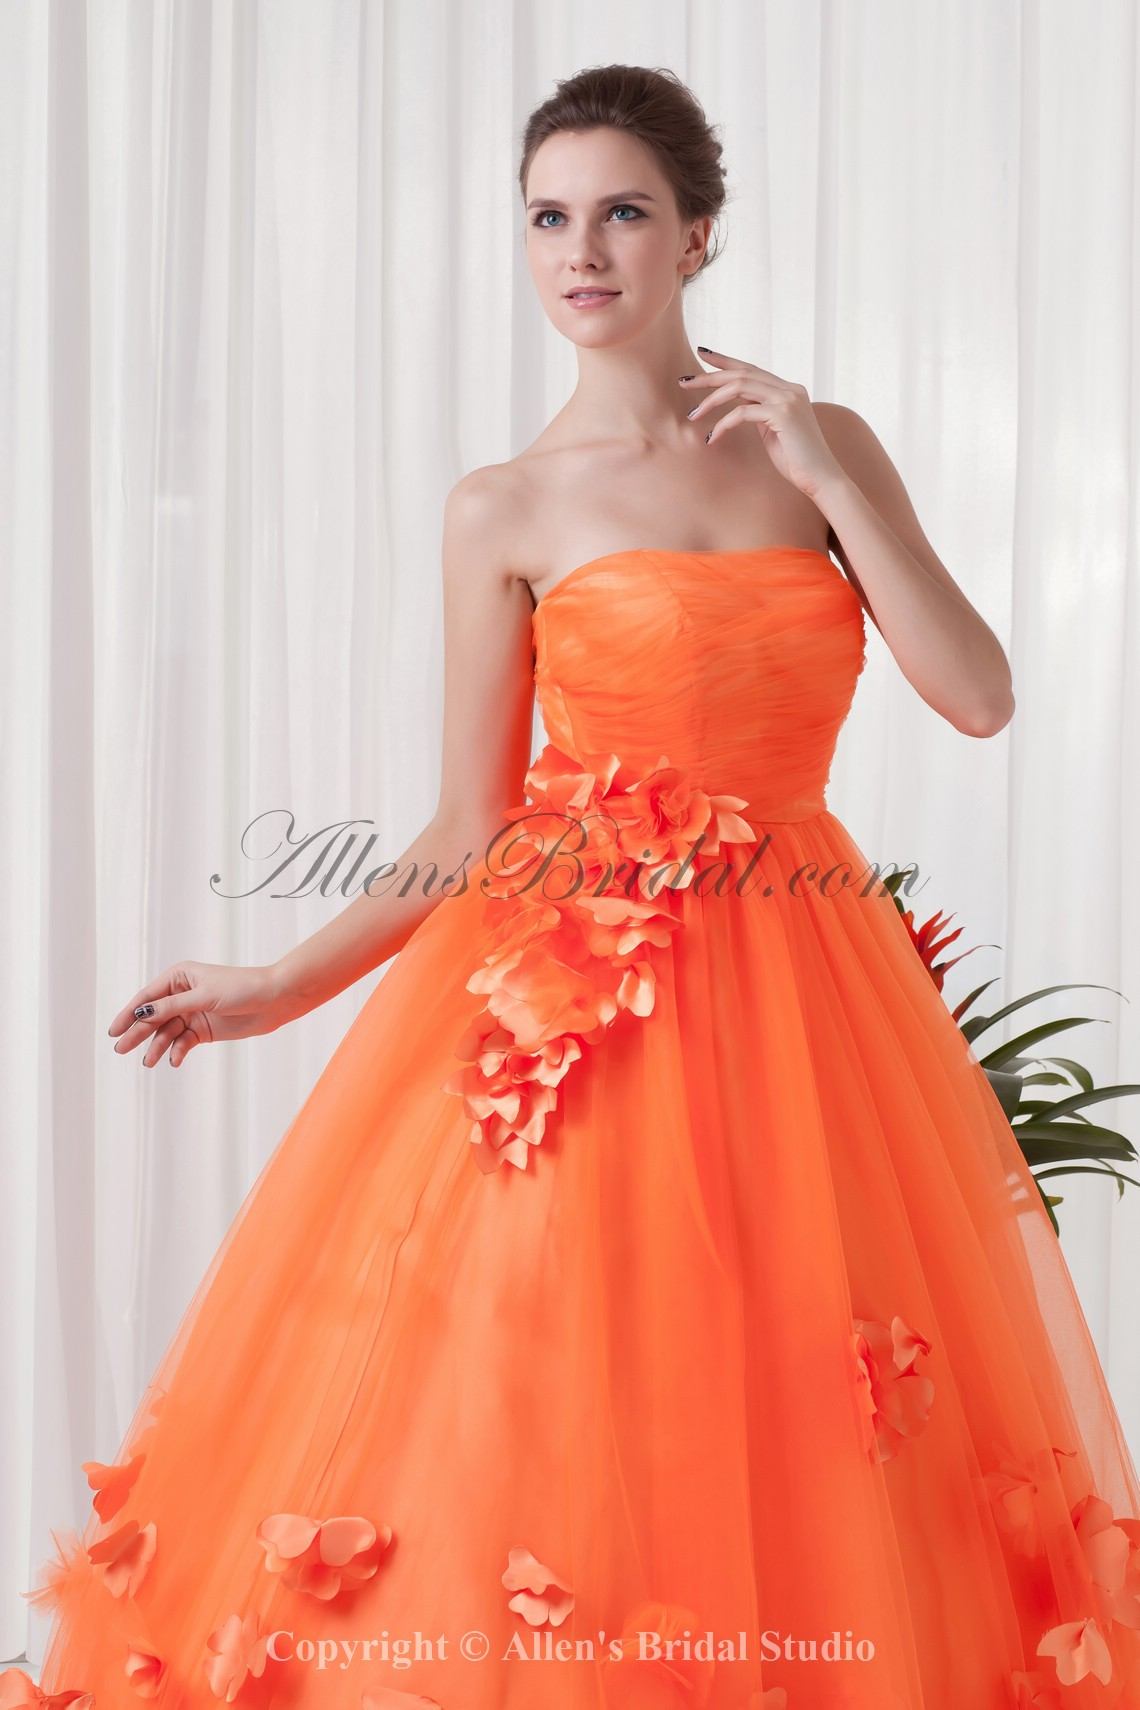 /311-2488/satin-and-net-strapless-ball-gown-floor-length-applique-prom-dress.jpg